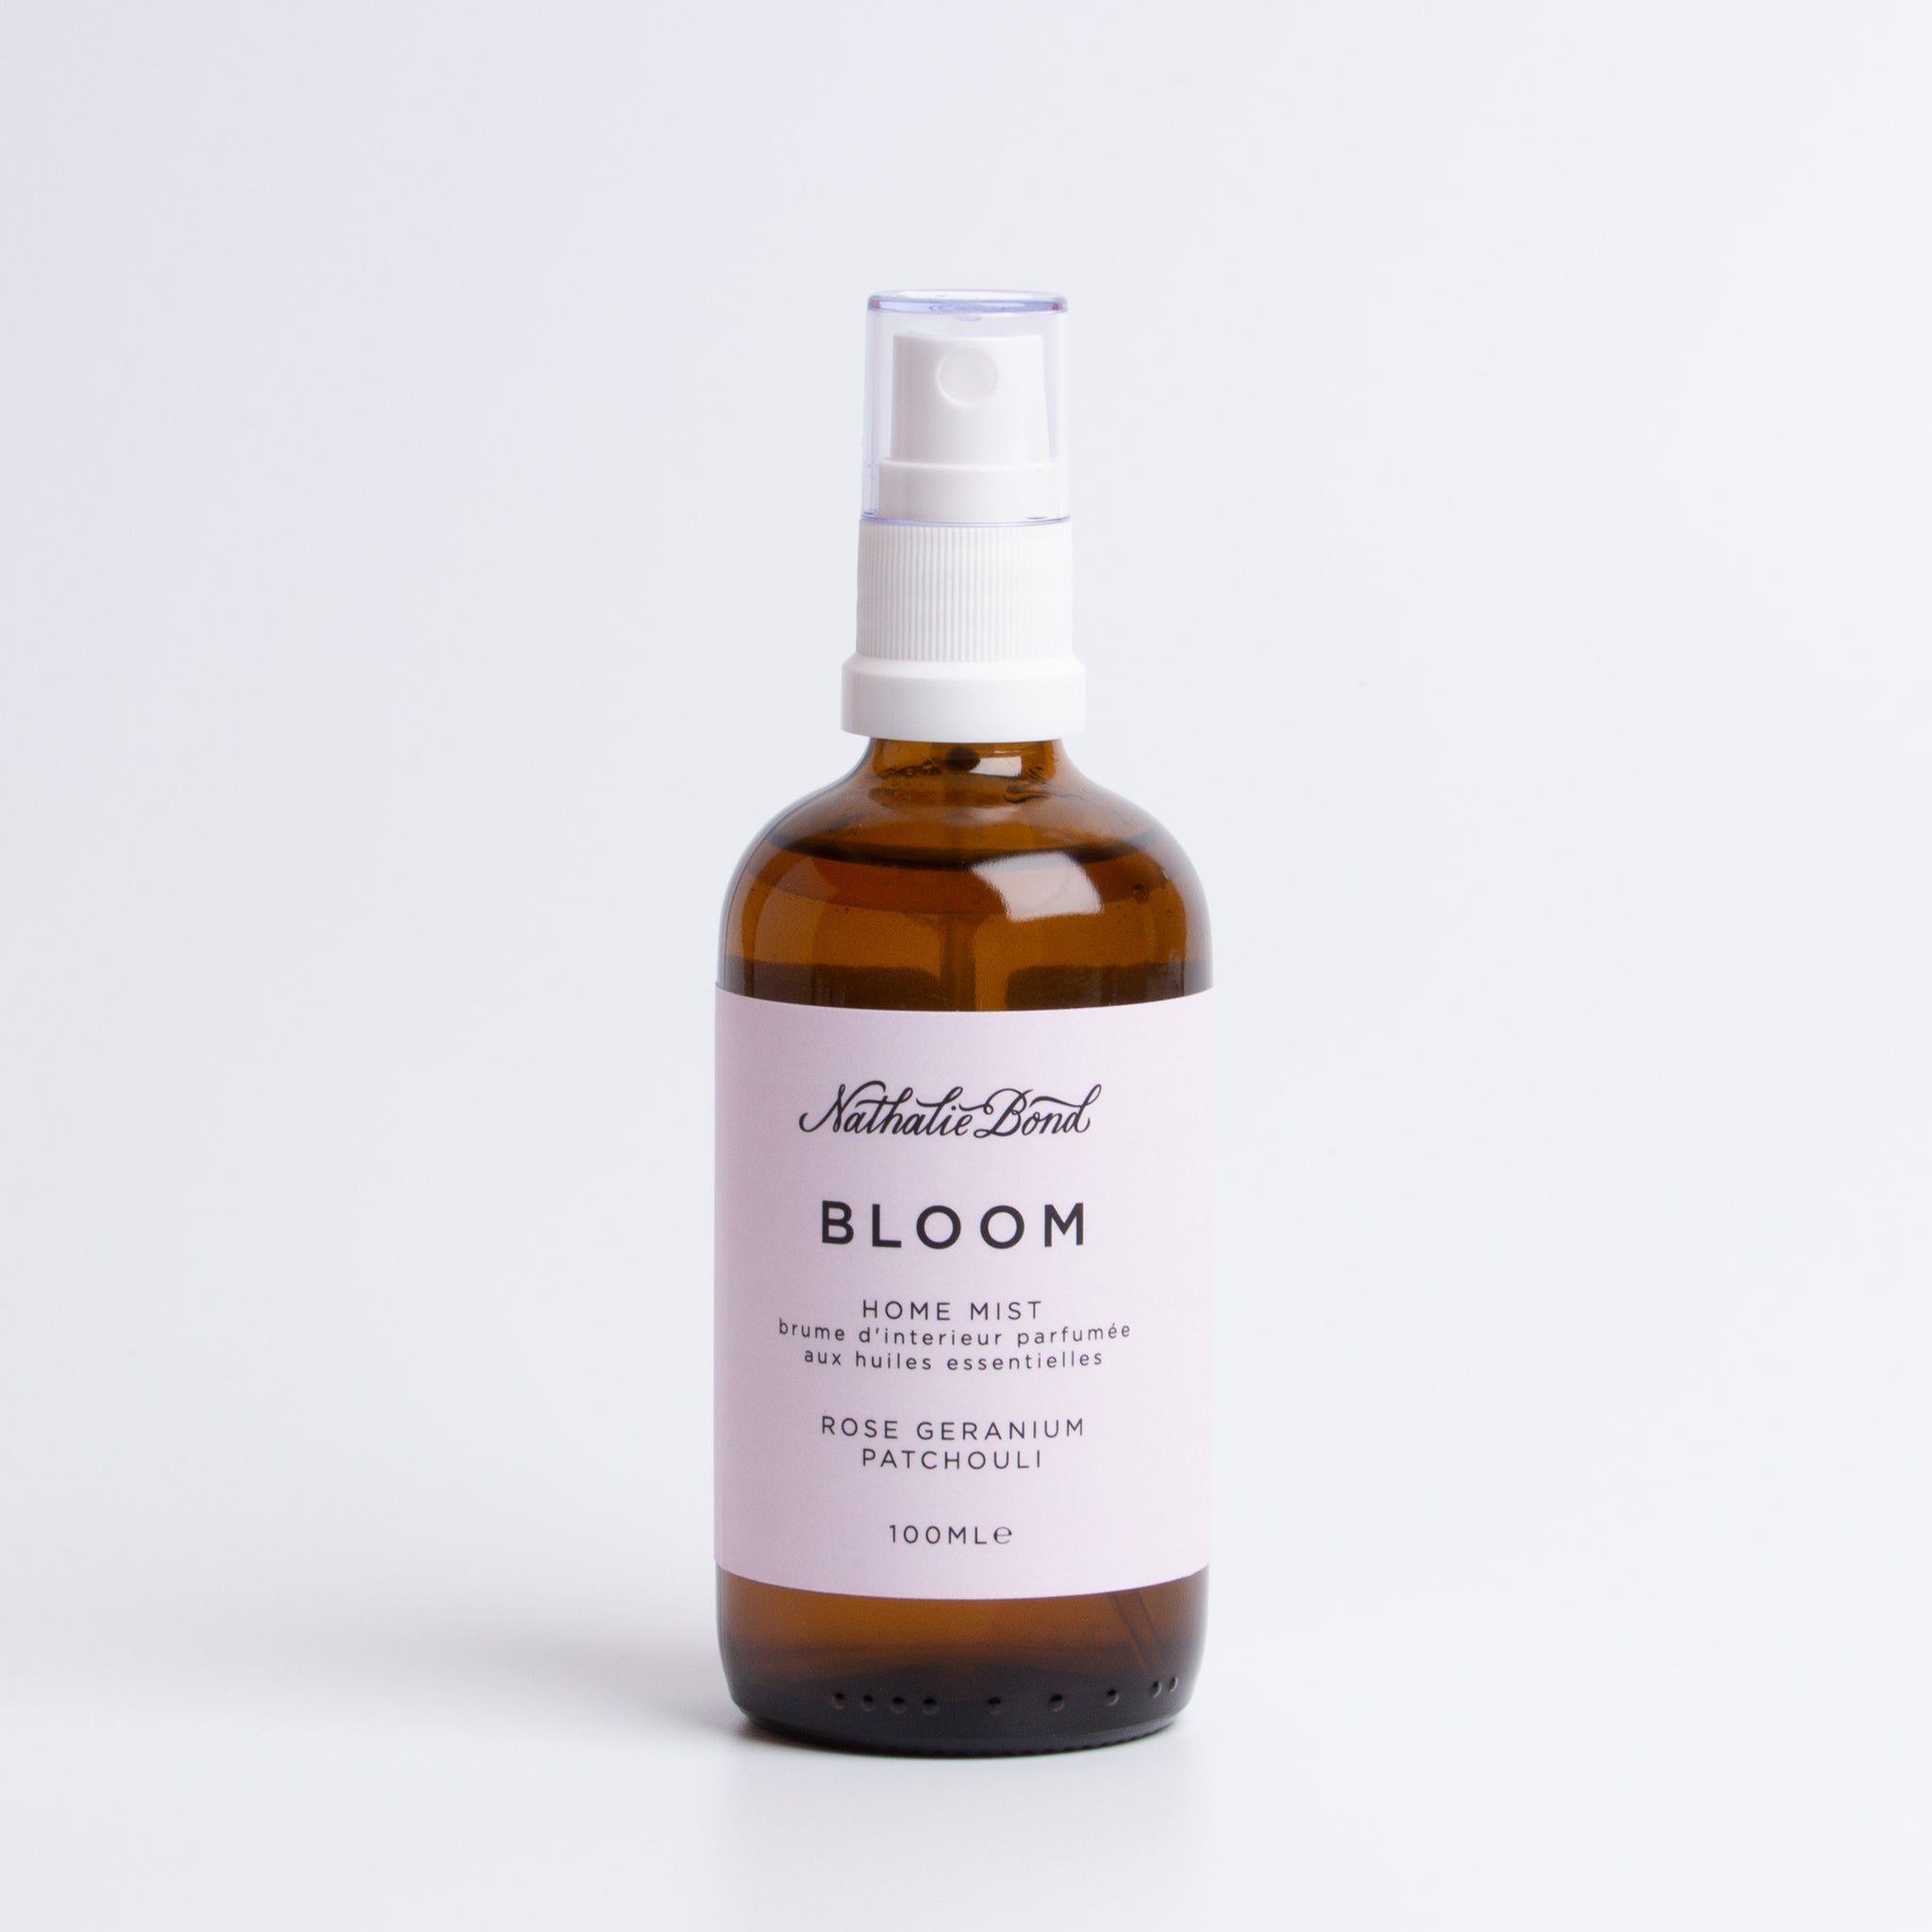 Bloom Home Mist by Nathalie Bond